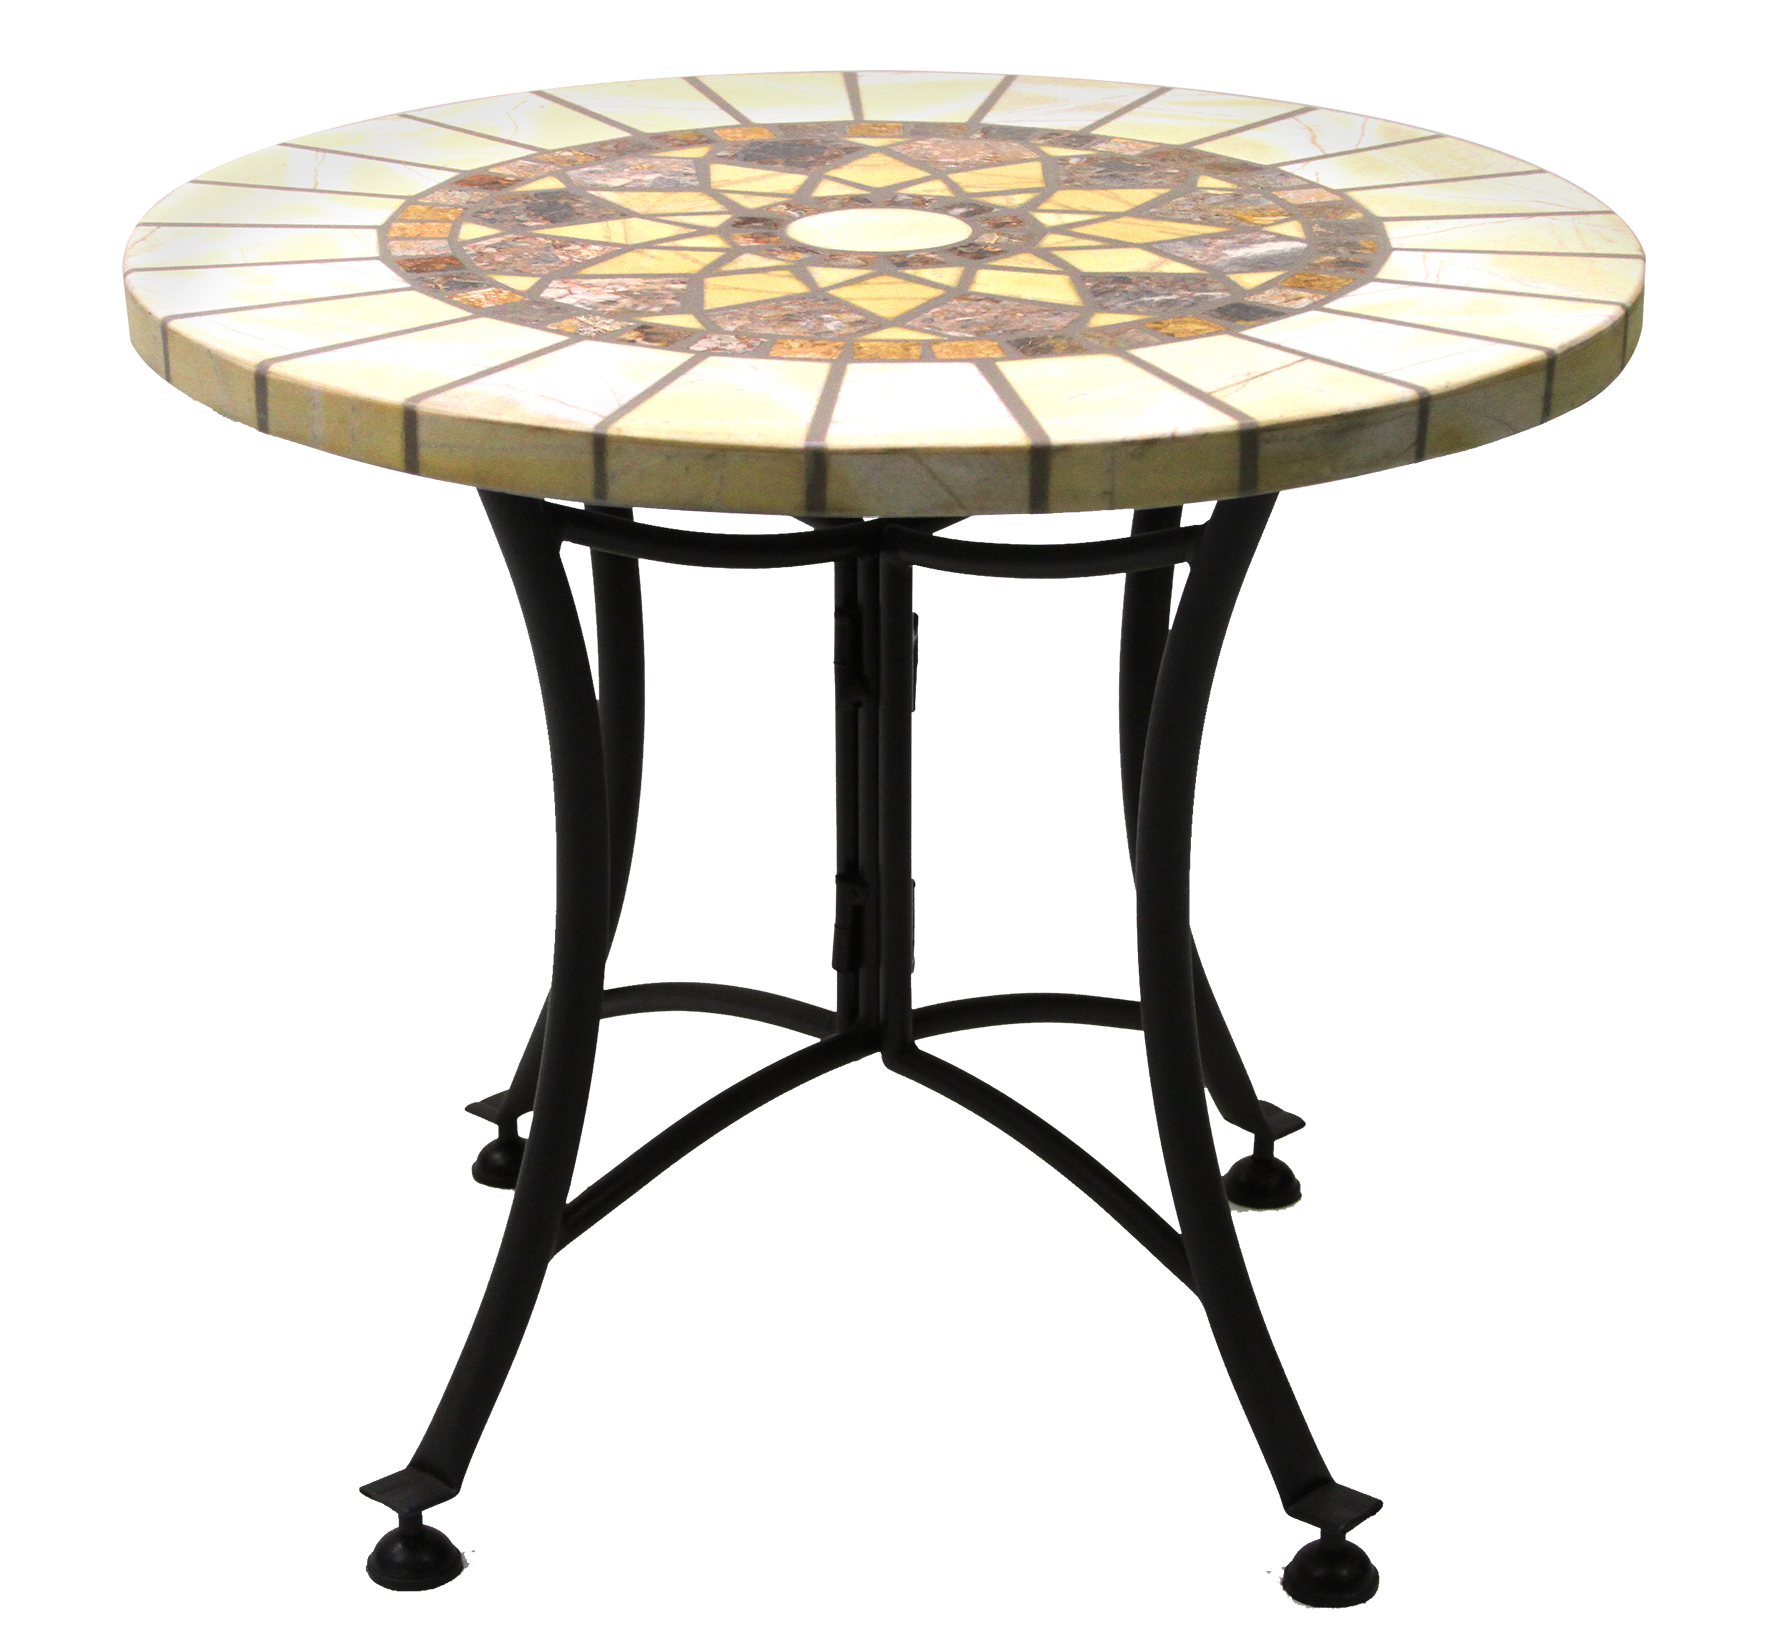 lovely outdoor accent table with occasional tables beautiful honeycomb marble mosaic end metal base small target round coffee stainless steel legs the range lamps white and gold